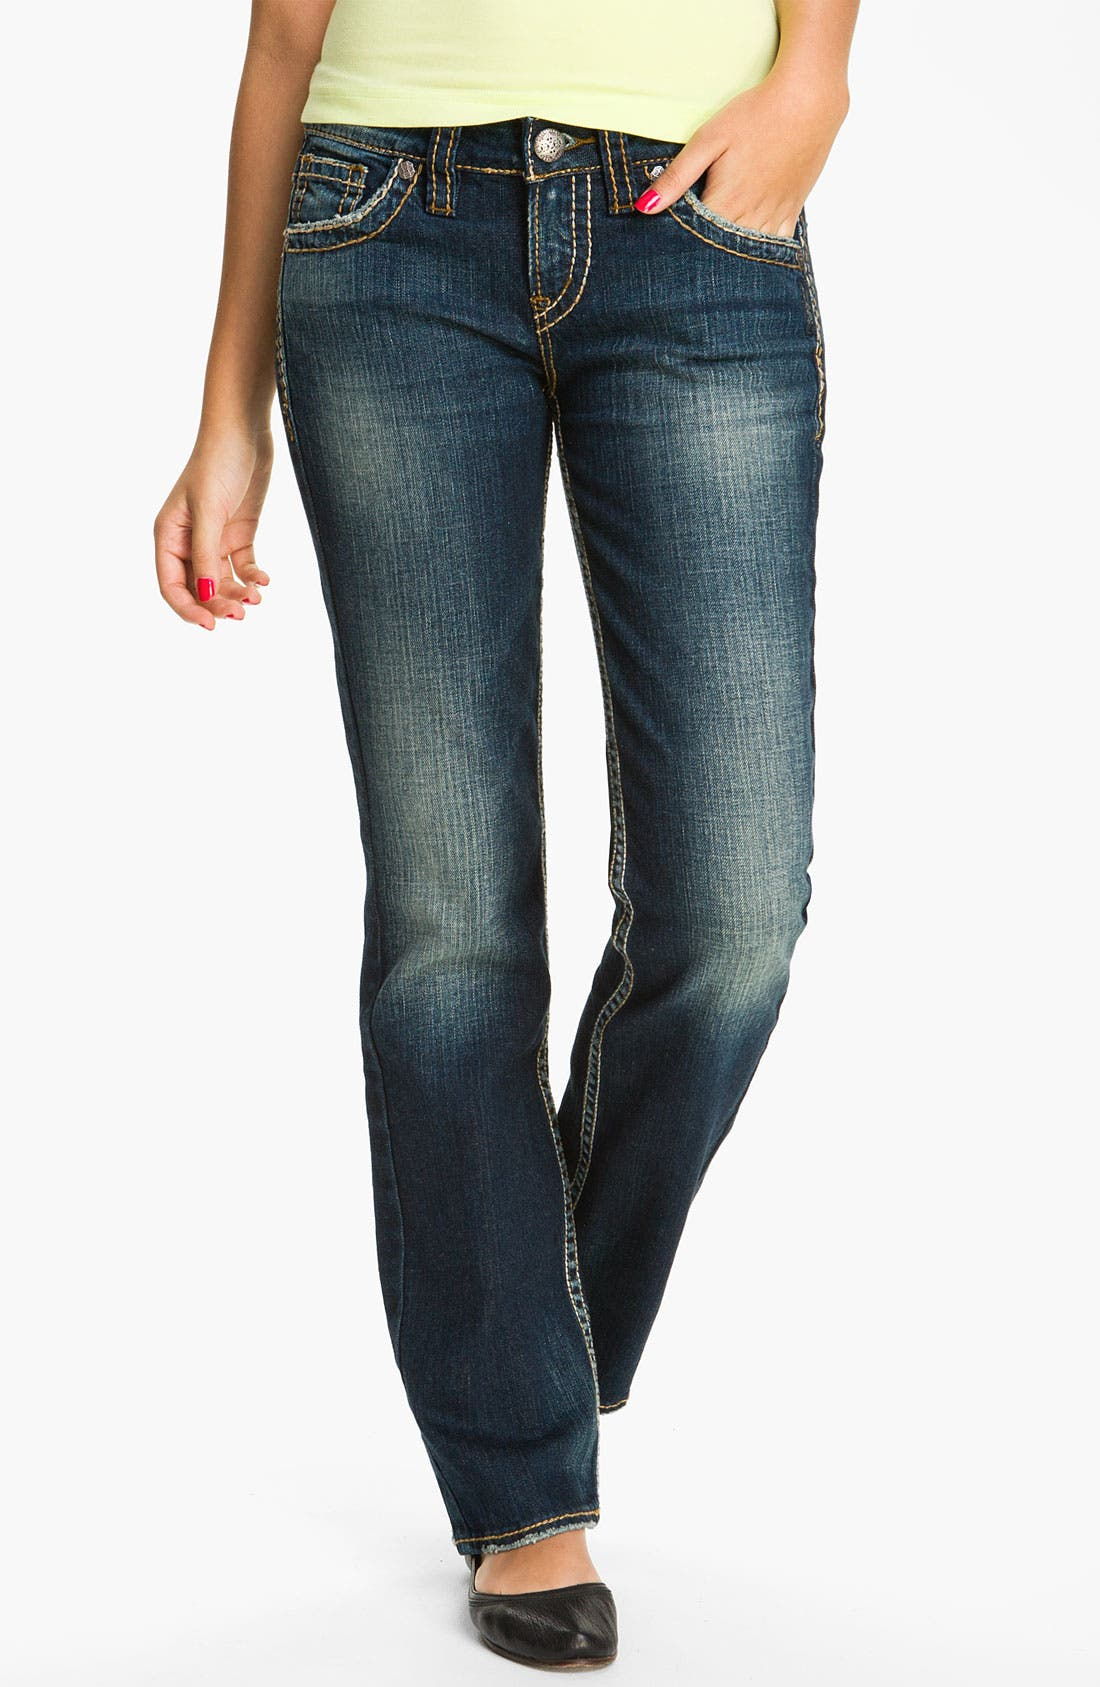 Main Image - Silver Jeans Co. 'Lola' Bootcut Jeans (Juniors)